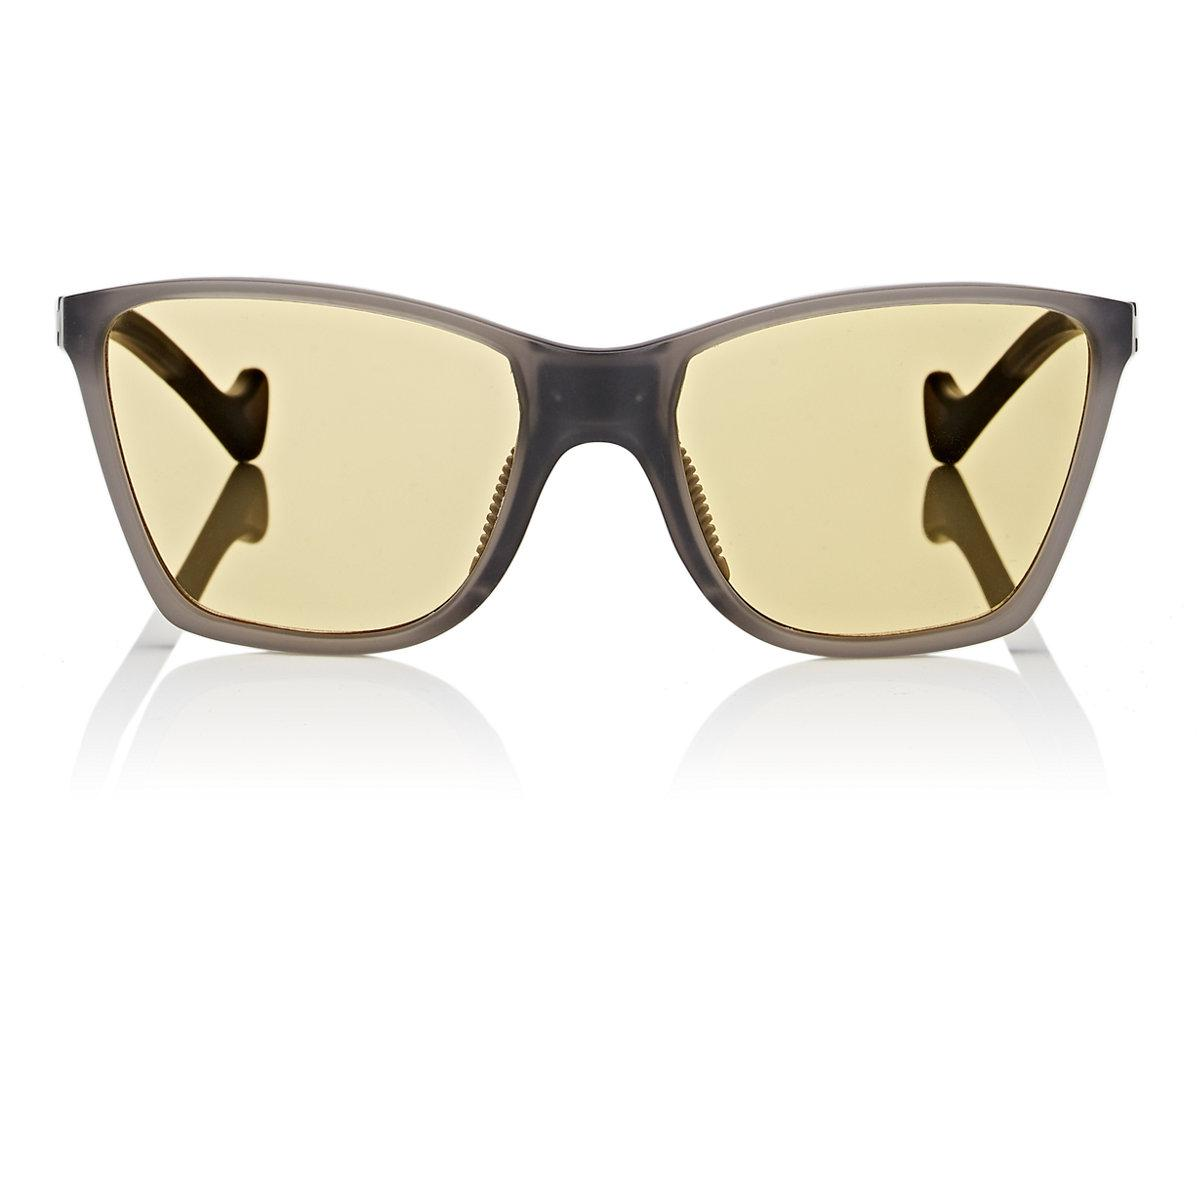 8a64884157 Lyst - District Vision Keiichi Small Running Sunglasses in Yellow ...